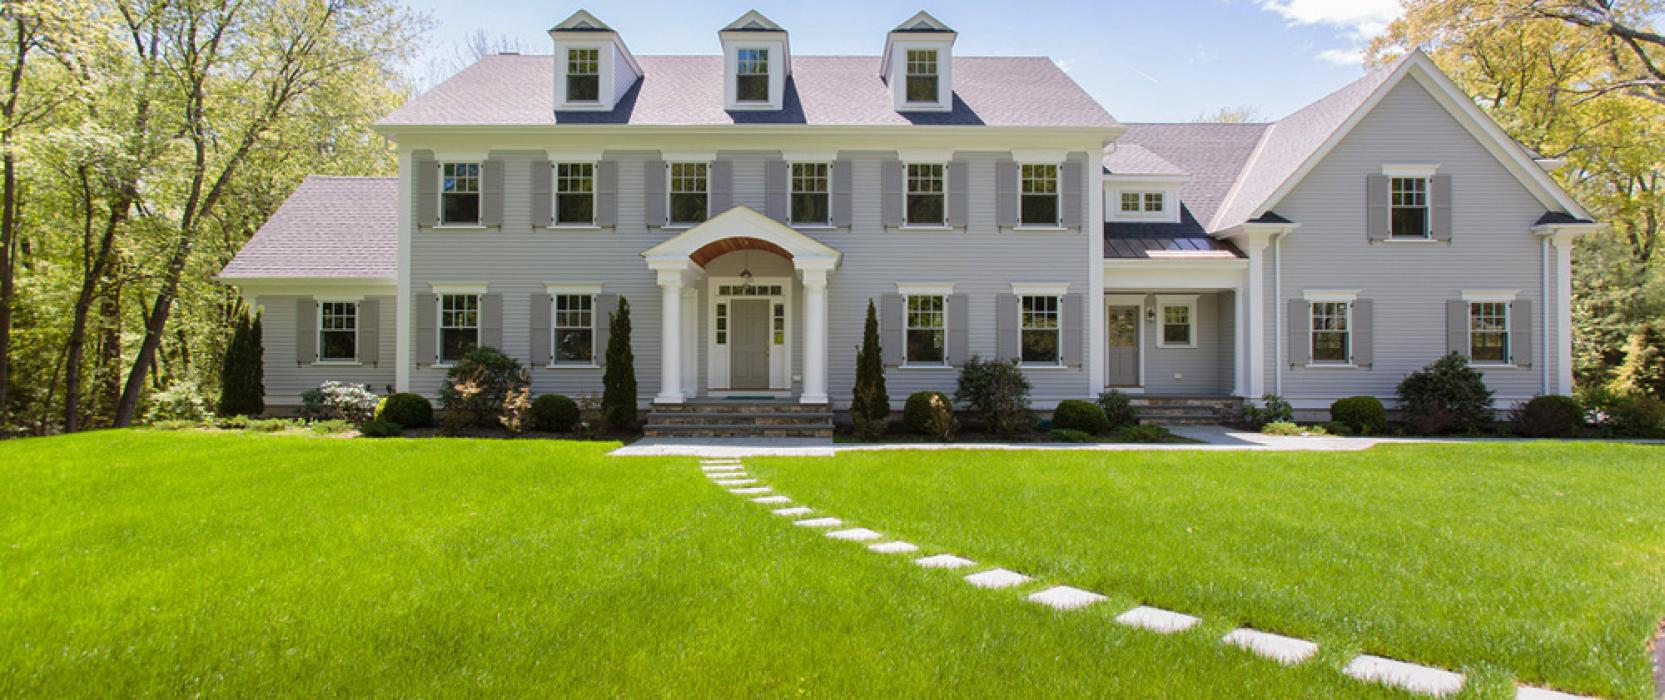 Luxurious Weston Home Ready for Immediate Occupancy